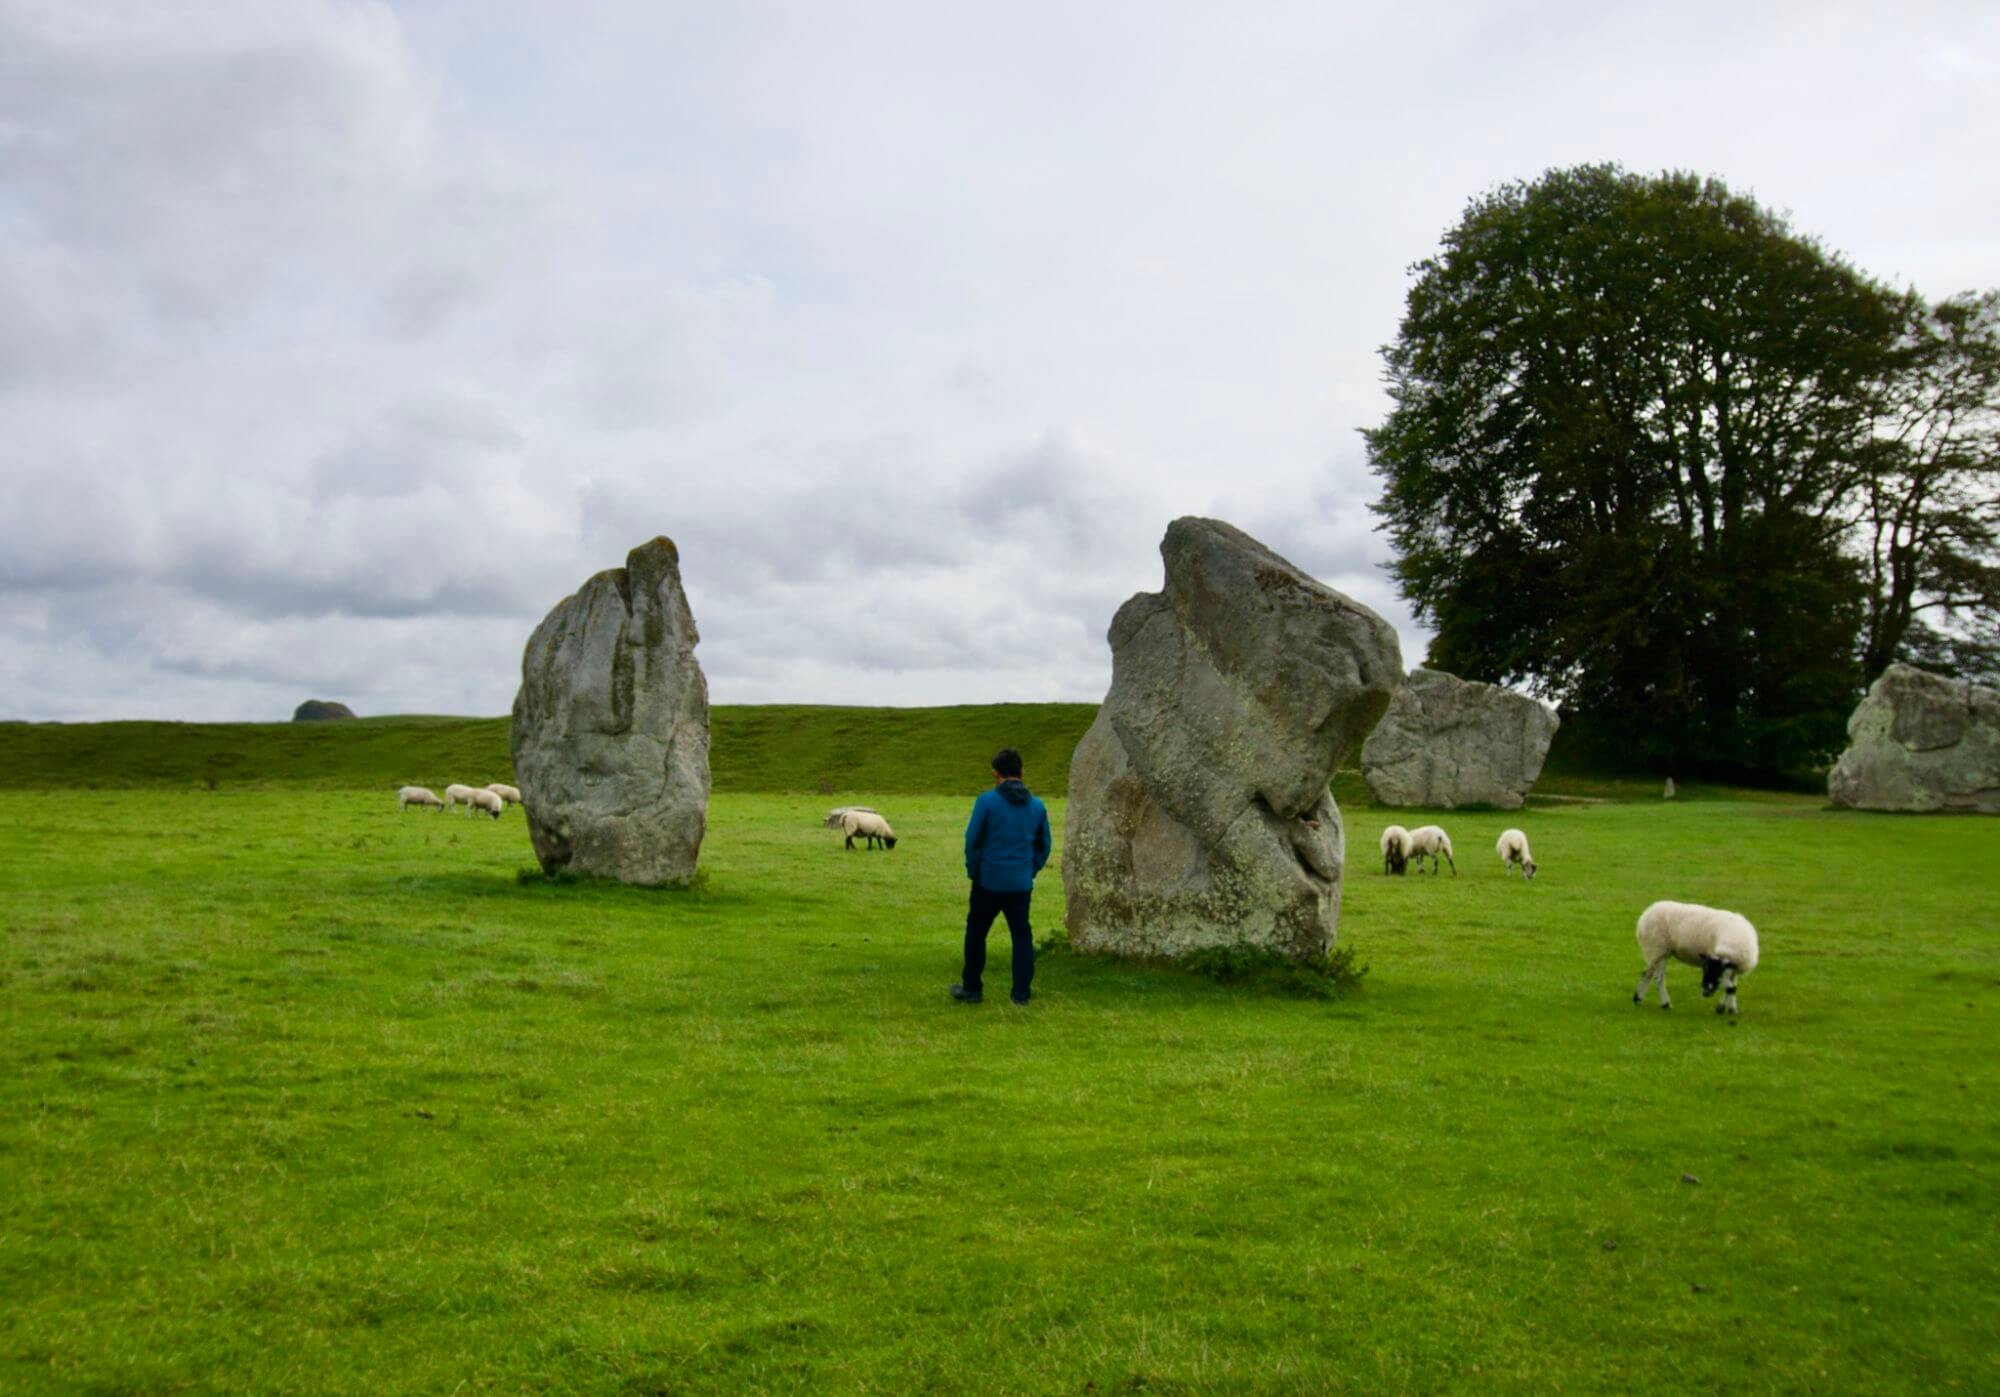 Jason walking along the Avebury stone circle